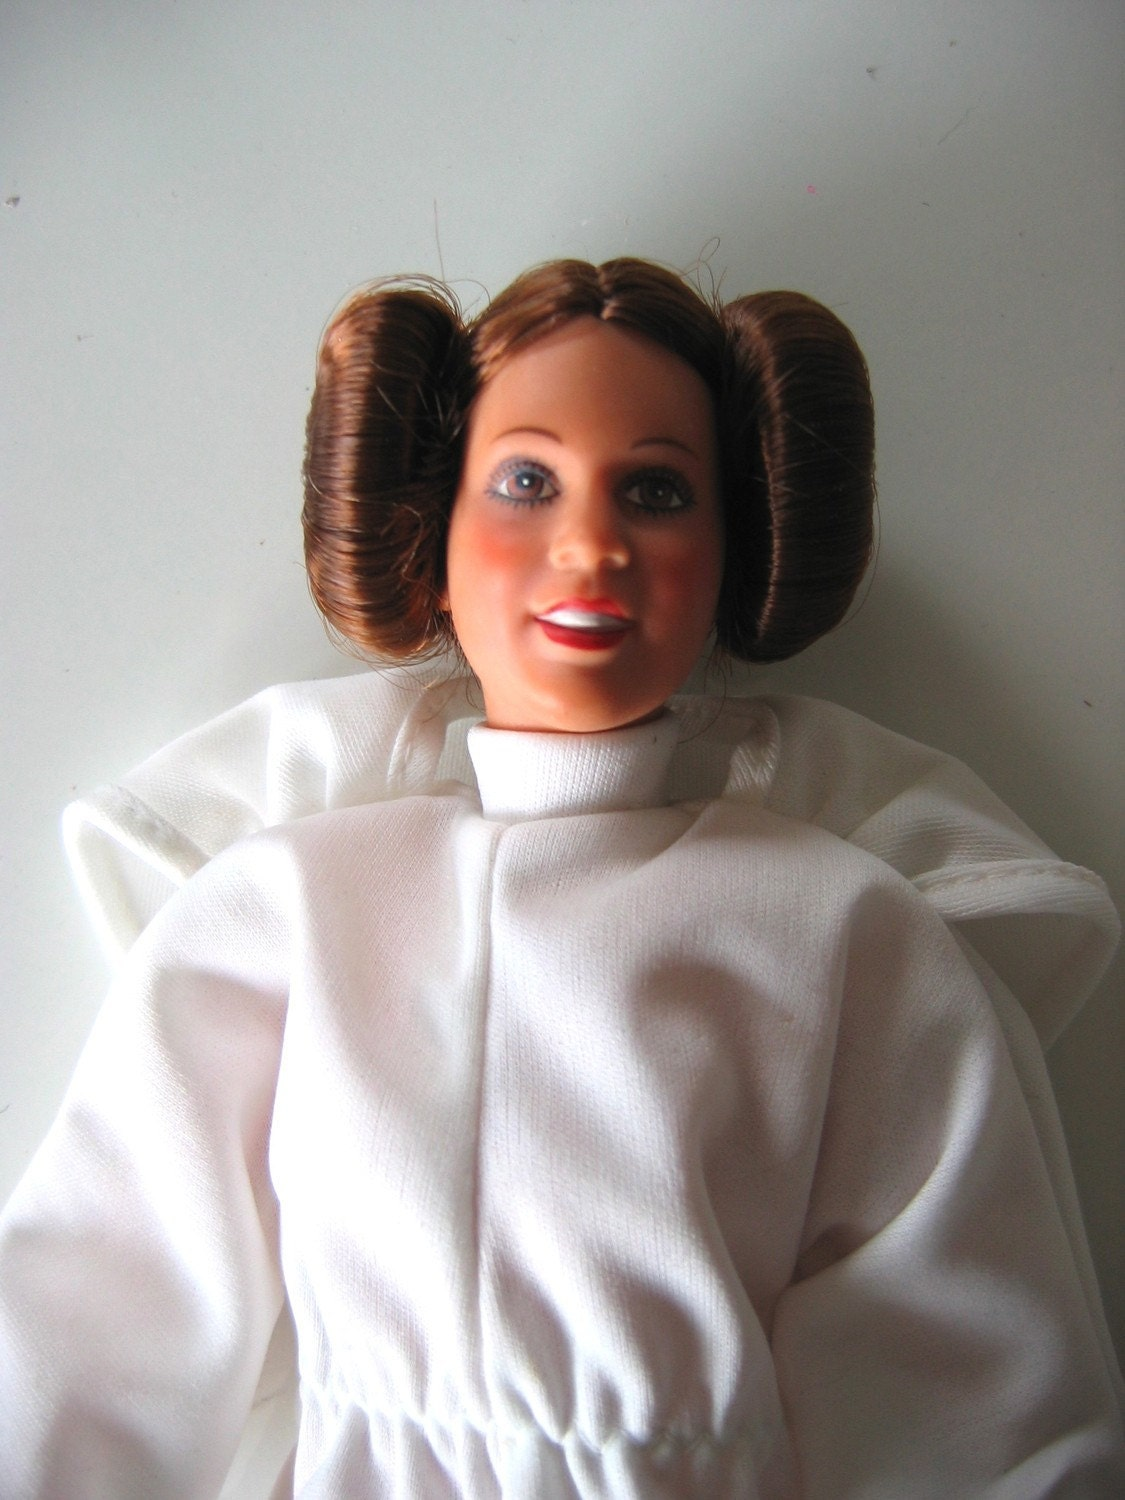 Vintage 1970's Barbie Era. Star Wars Princess Leia by nancynaz